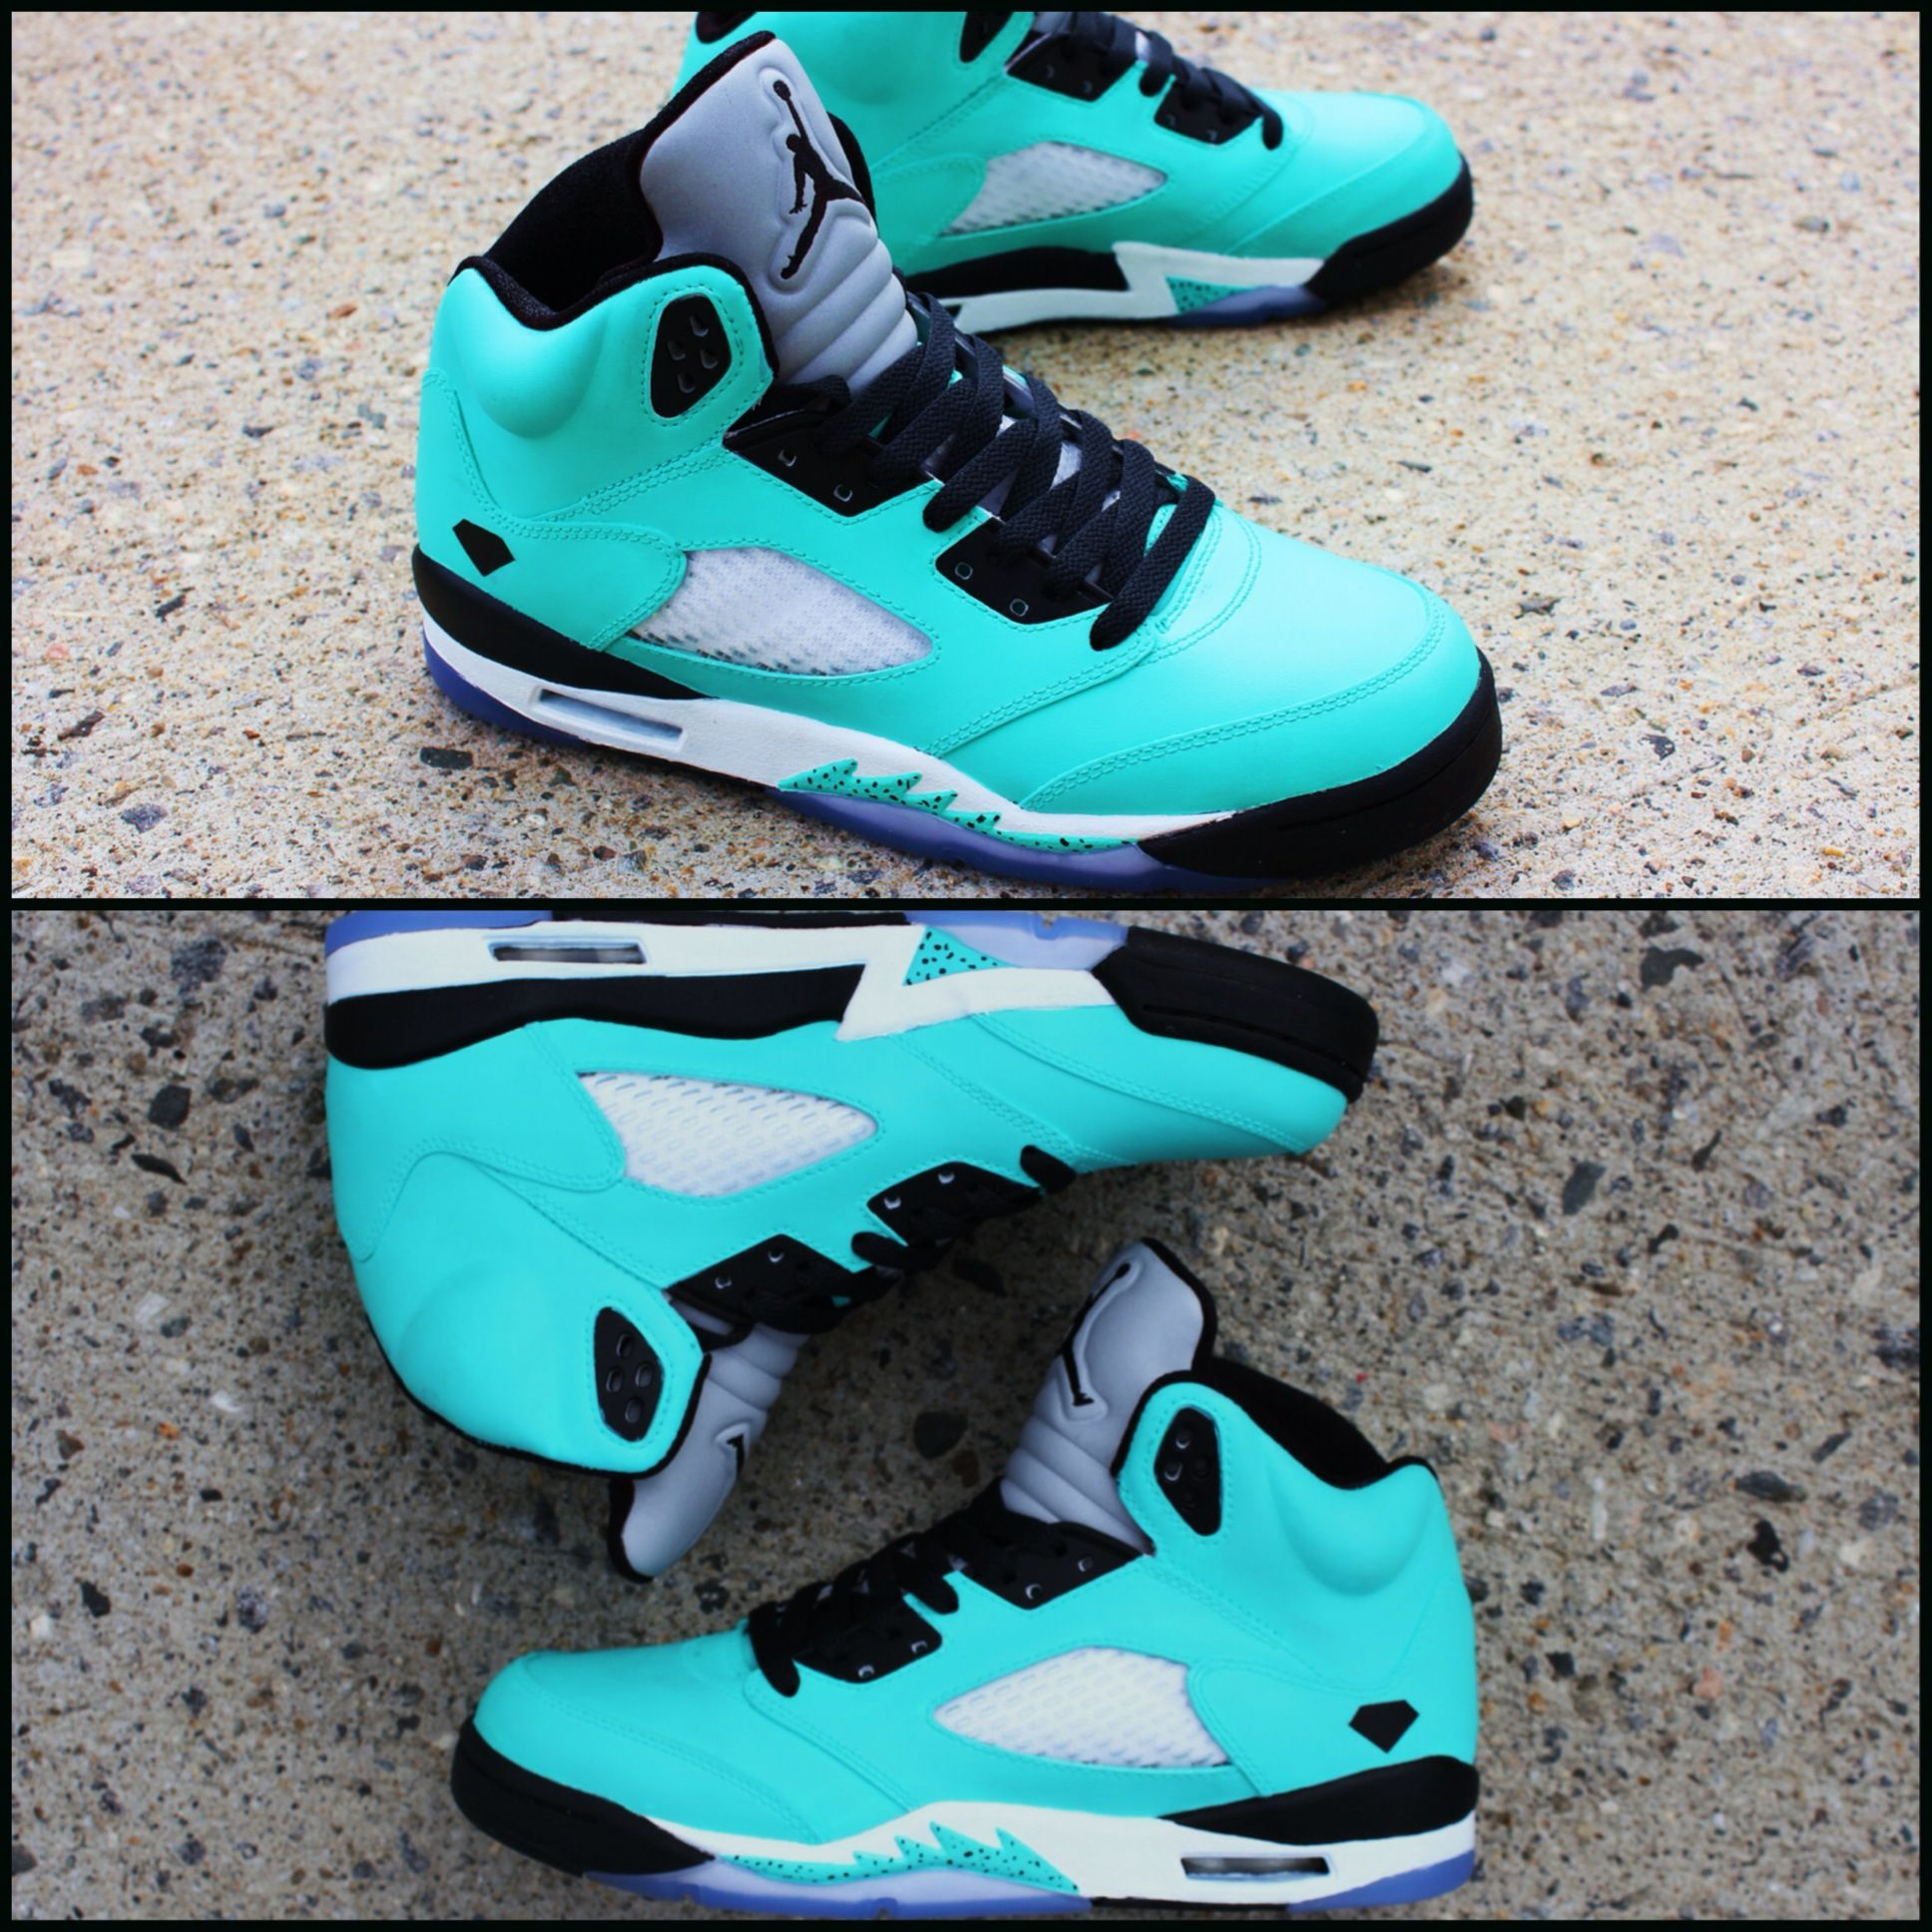 online store d1ea6 cb534 Custom Air Jordan 5  TIFFANY BLACK DIAMOND  Sneakers. Featuring A Tiffany  Blue Base That Add A Black-Diamond Logo On The Sides Sitting Atop An Icy  Blue ...